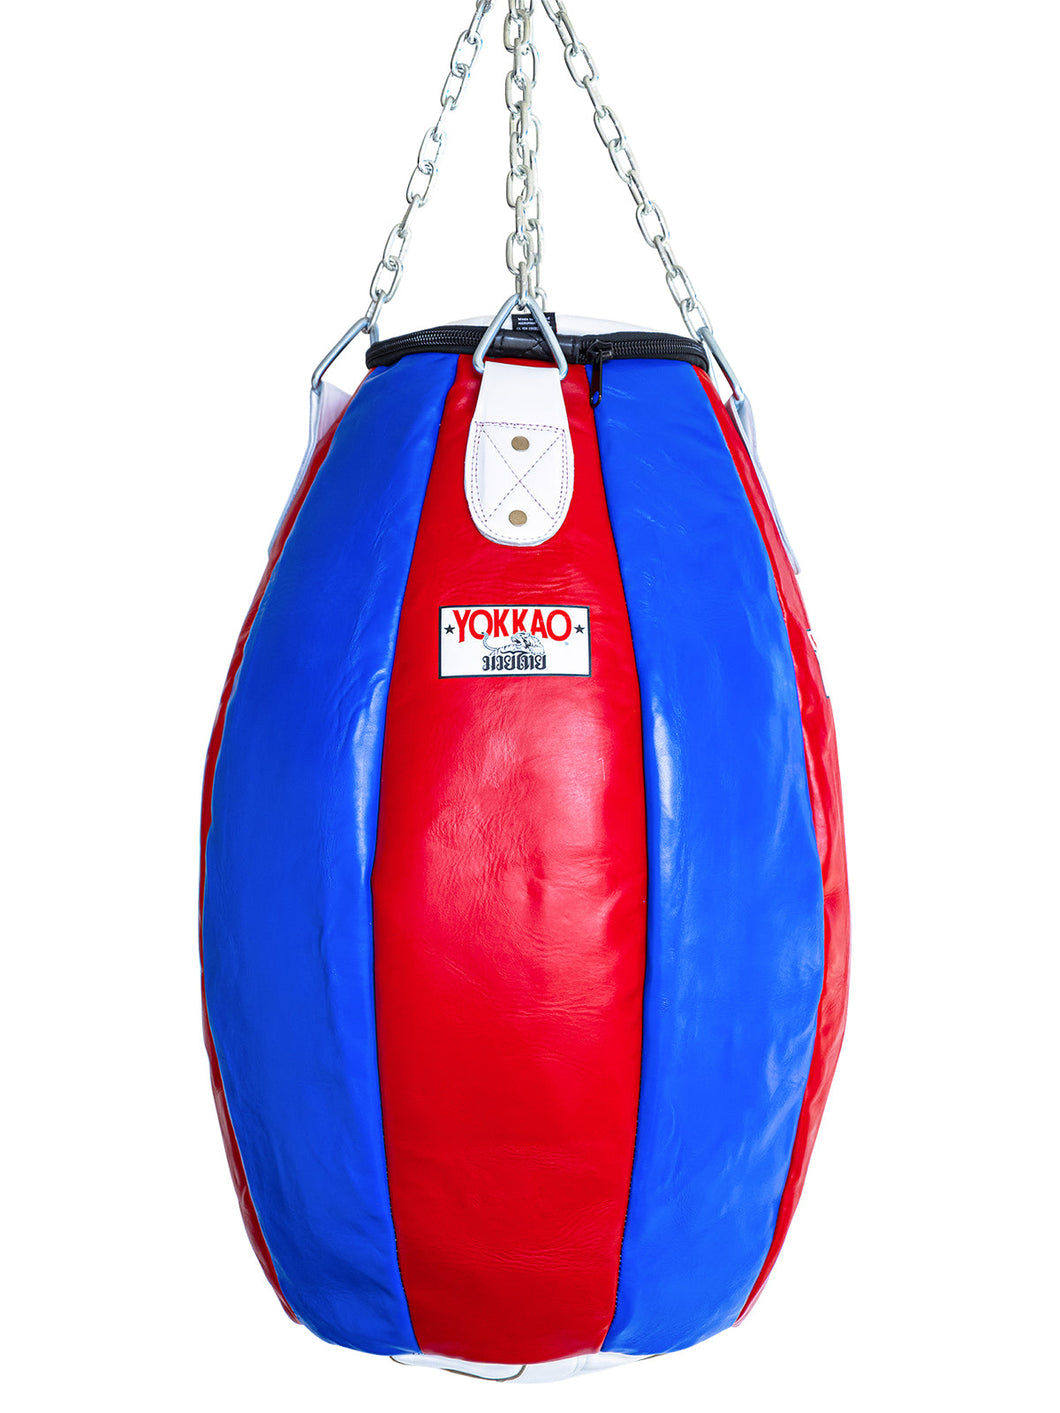 YOKKAO Tear Drop Heavy Bag Thai Flag - YOKKAO